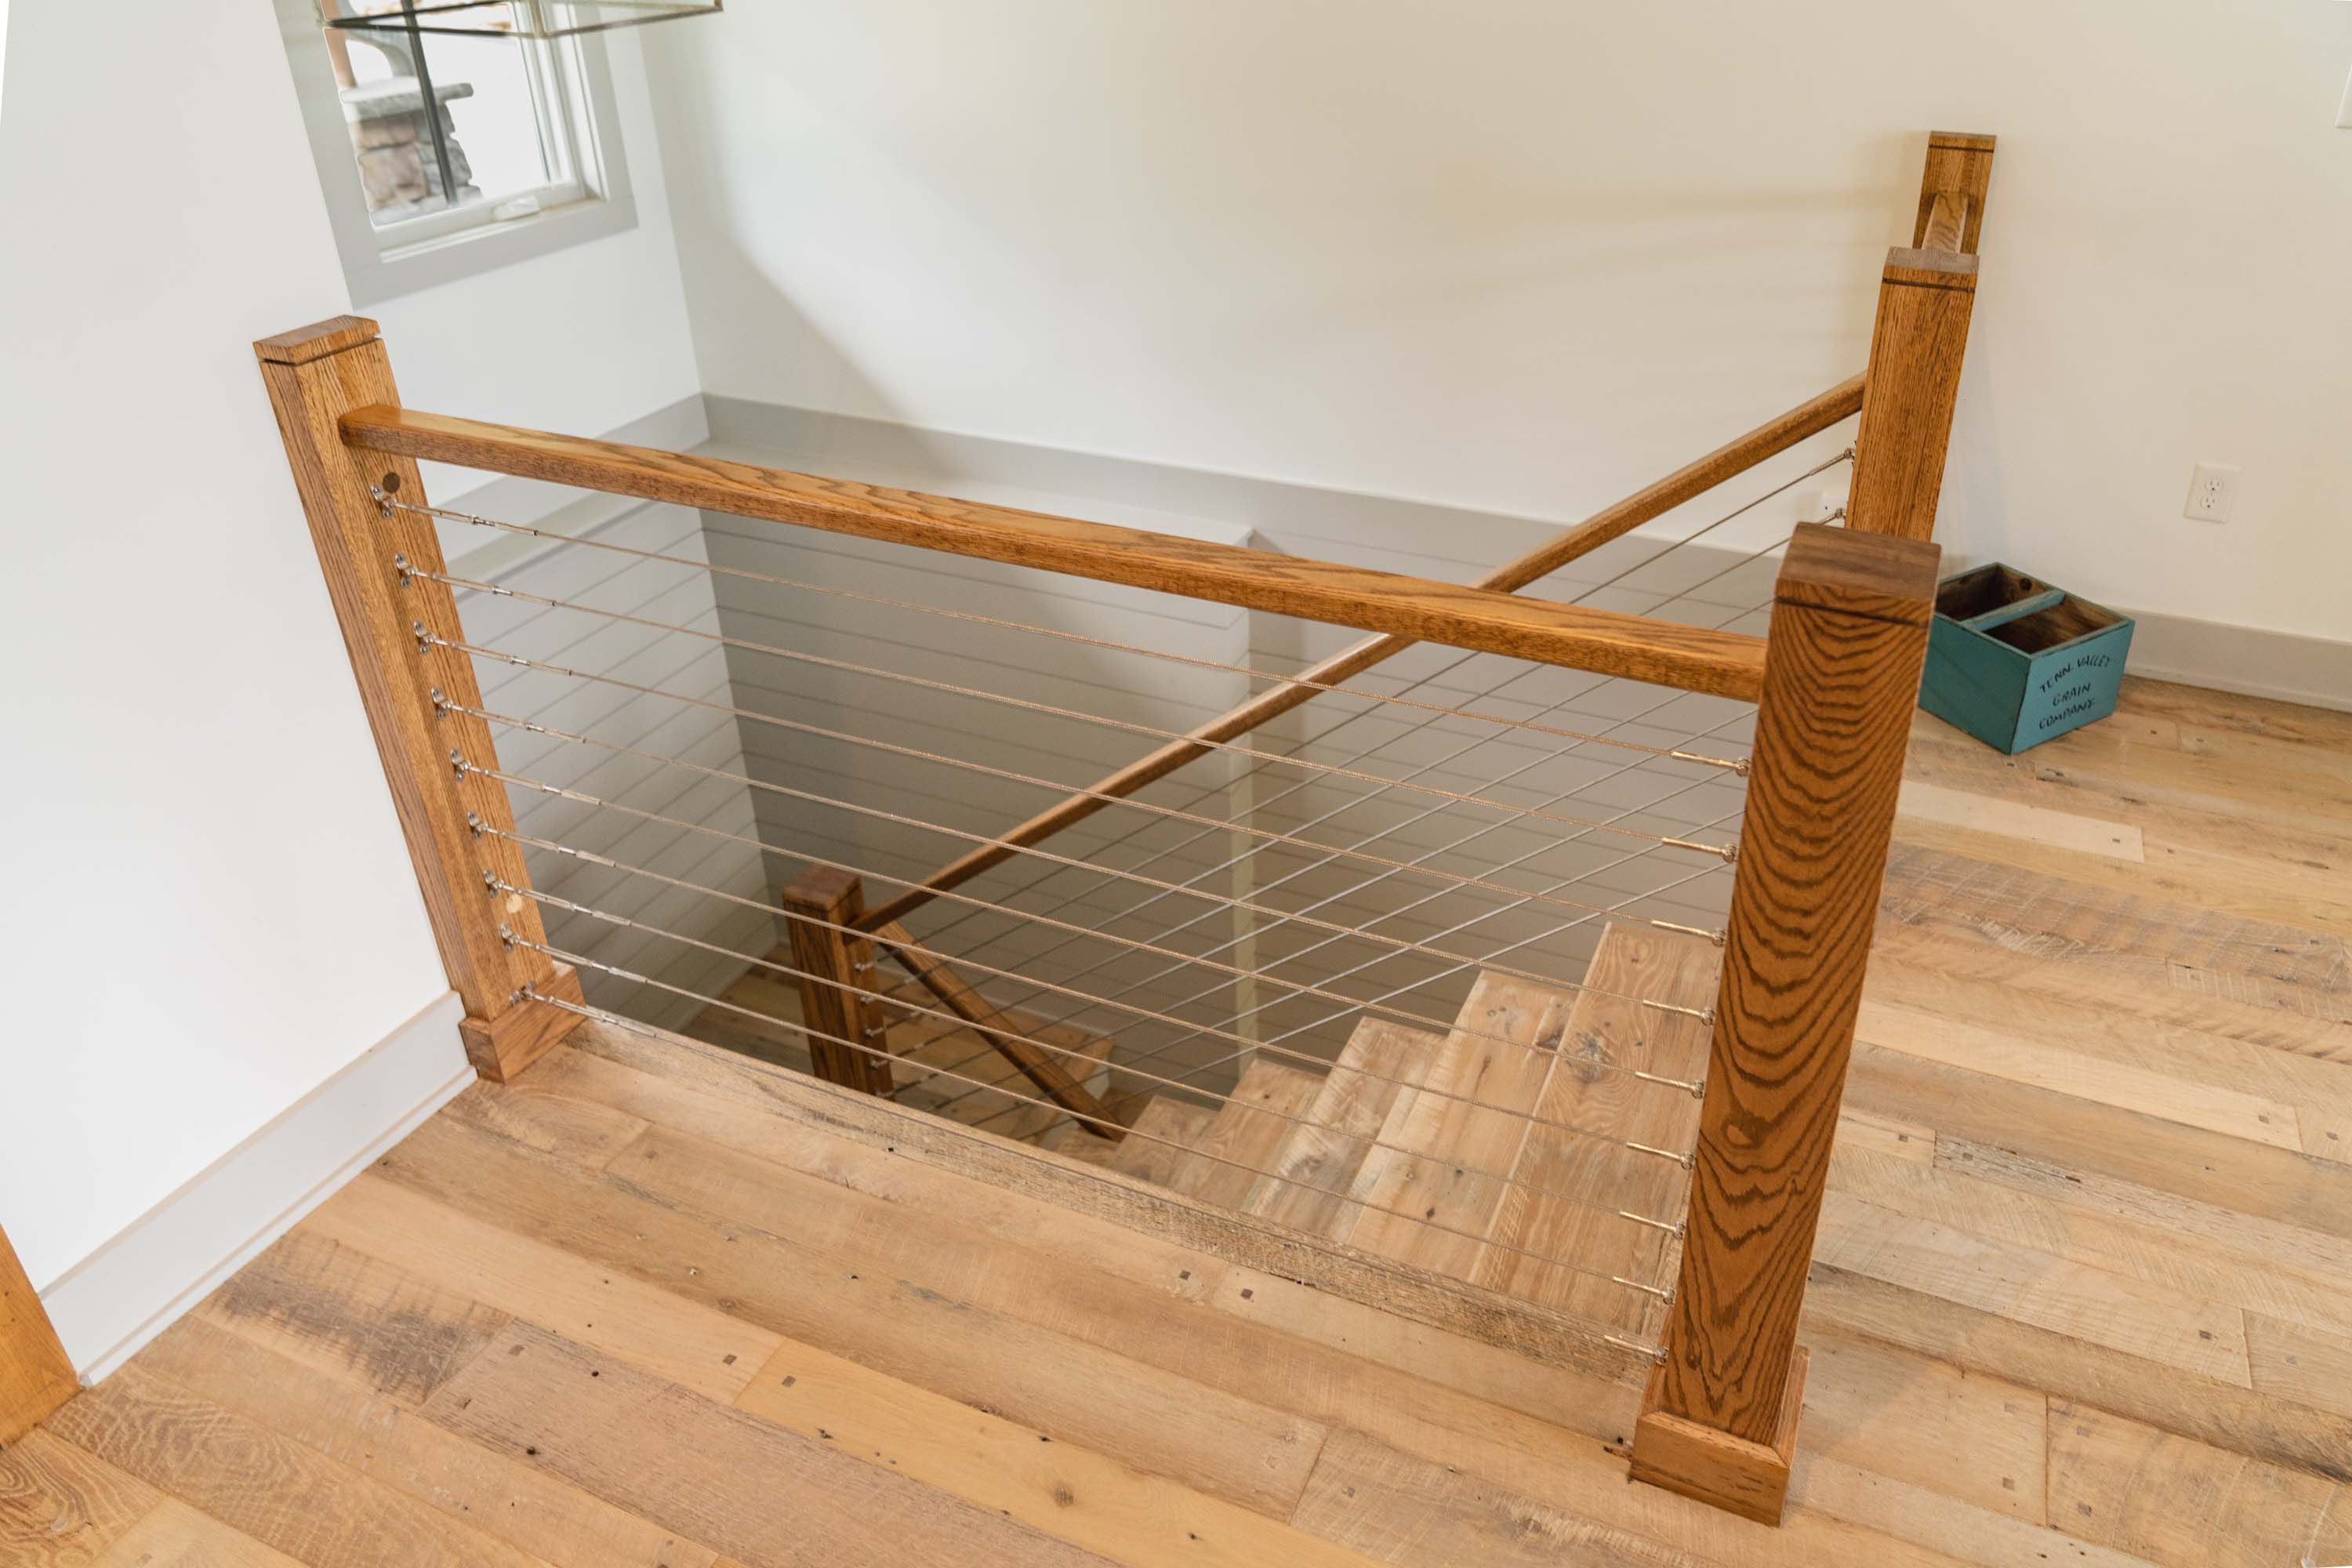 A staircase with Nantucket Reclaimed Wood Flooring by Tennessee Wood Flooring. These floors are real hardwood floors made locally.